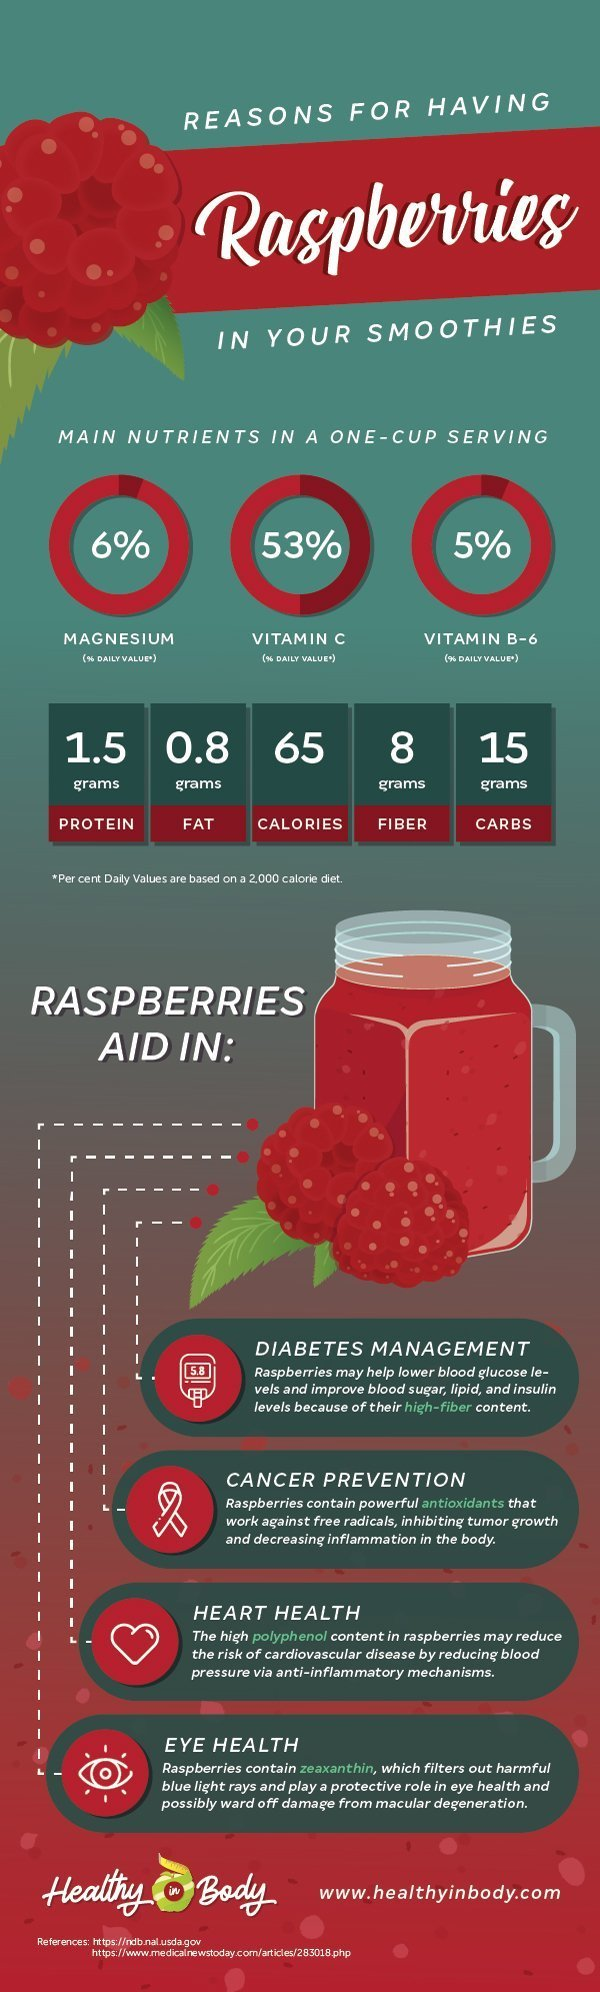 An info-graphic presenting the nutrient content and health benefits of raspberries and an illustration of a couple of raspberries next to a glass of raspberry smoothie